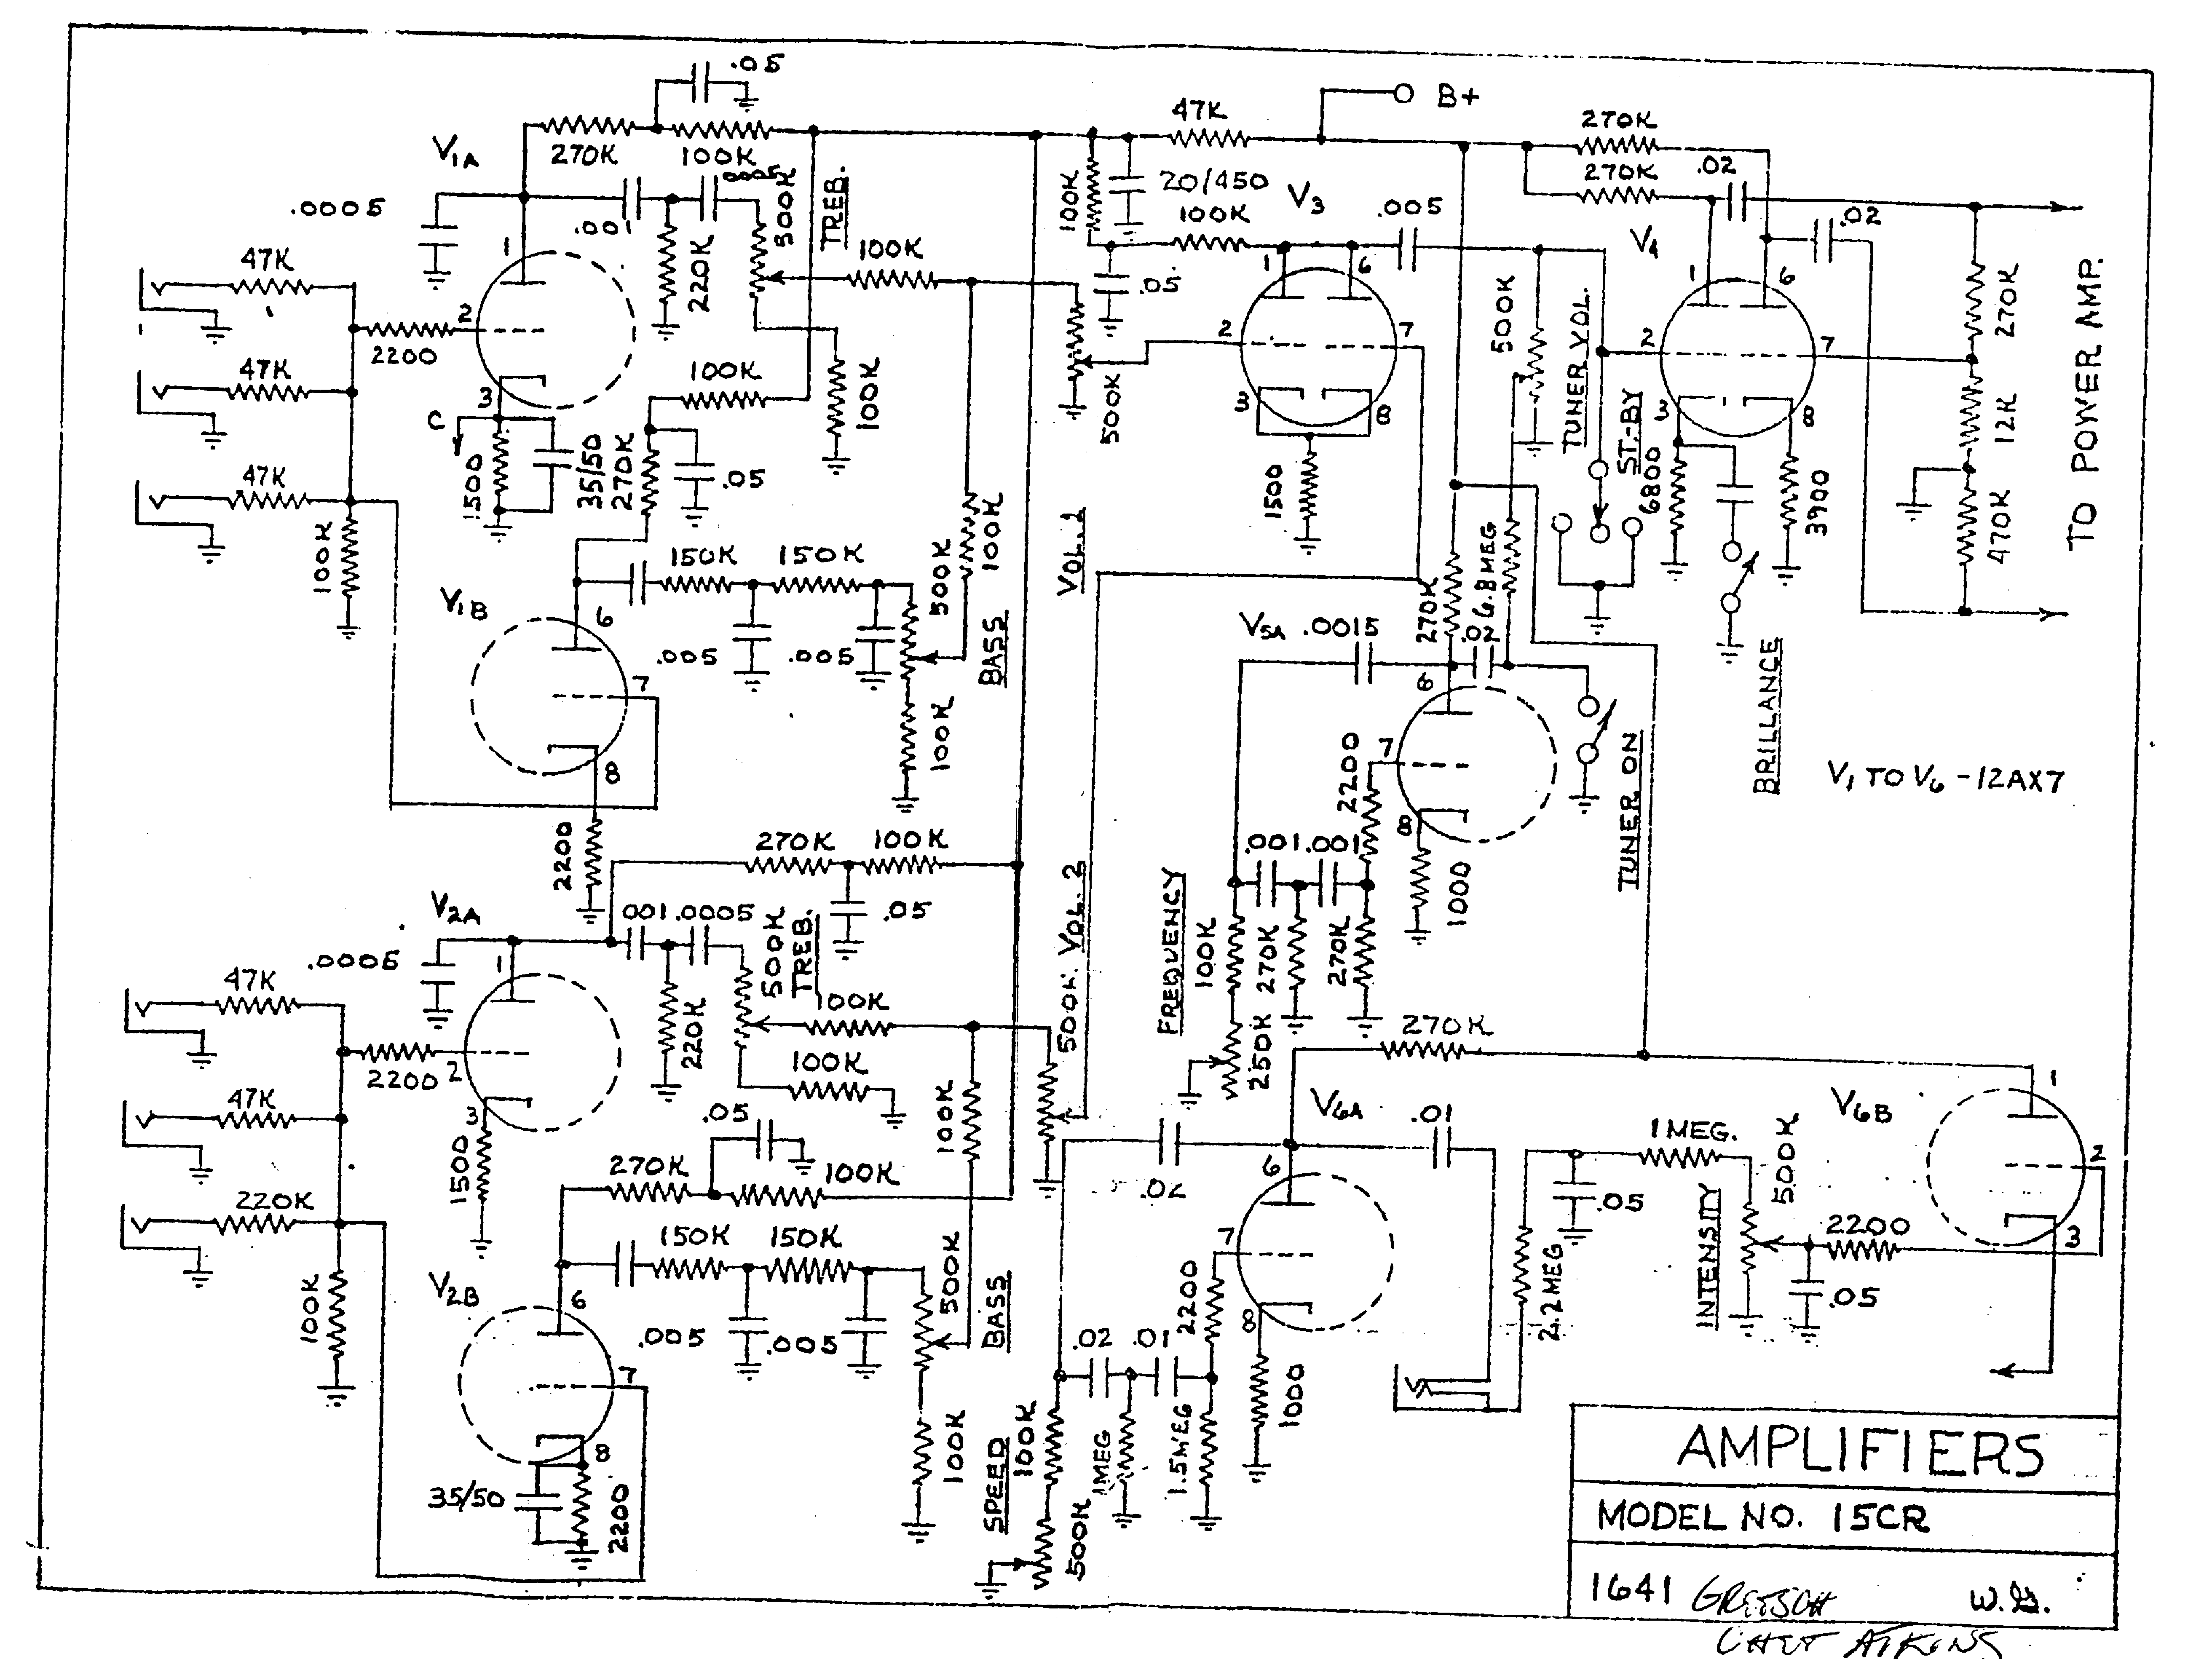 gretsch 6160 service manual download  schematics  eeprom